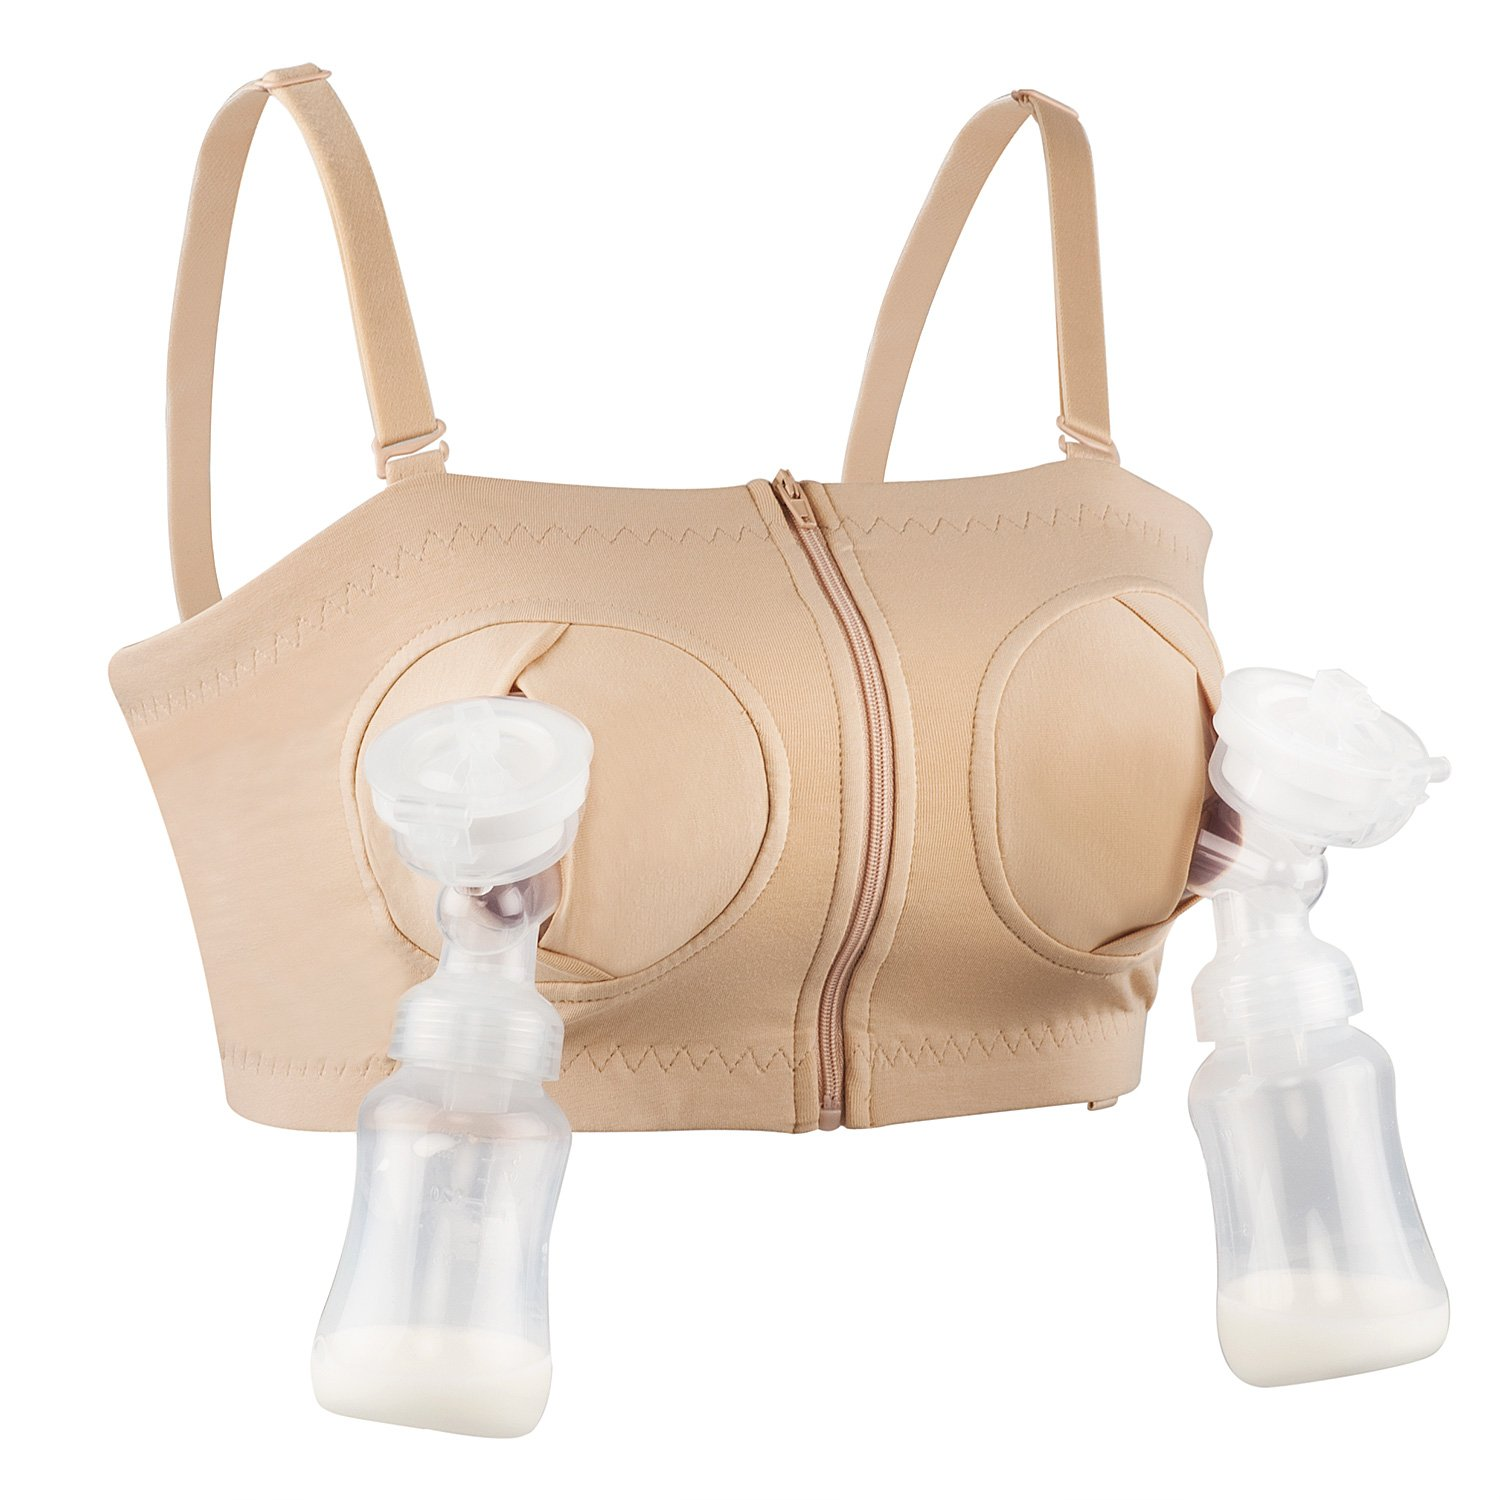 9886cf8cb3c Get Quotations · Hands-Free Pumping Bra Adjustable Breast-Pumps Holding Bra  by JIAN - Suitable for